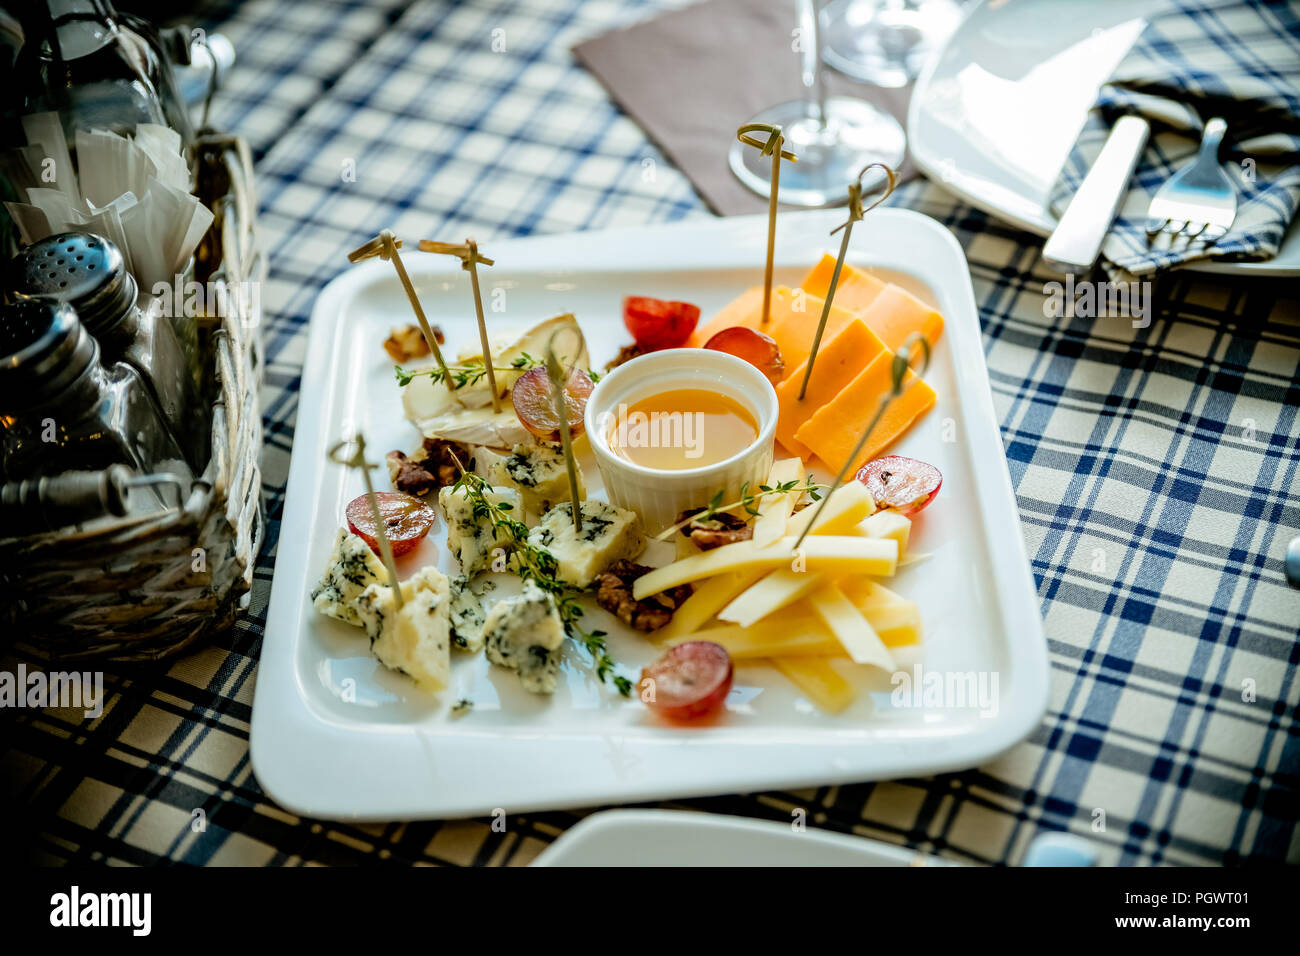 Cheese Plate Assortment Of Various Types Of Cheese And Honey On White Plate Cheese And Wine Party Table Perfect Holiday Appetizer Different Types Of Cheeses Raw Food Concept Stock Photo Alamy